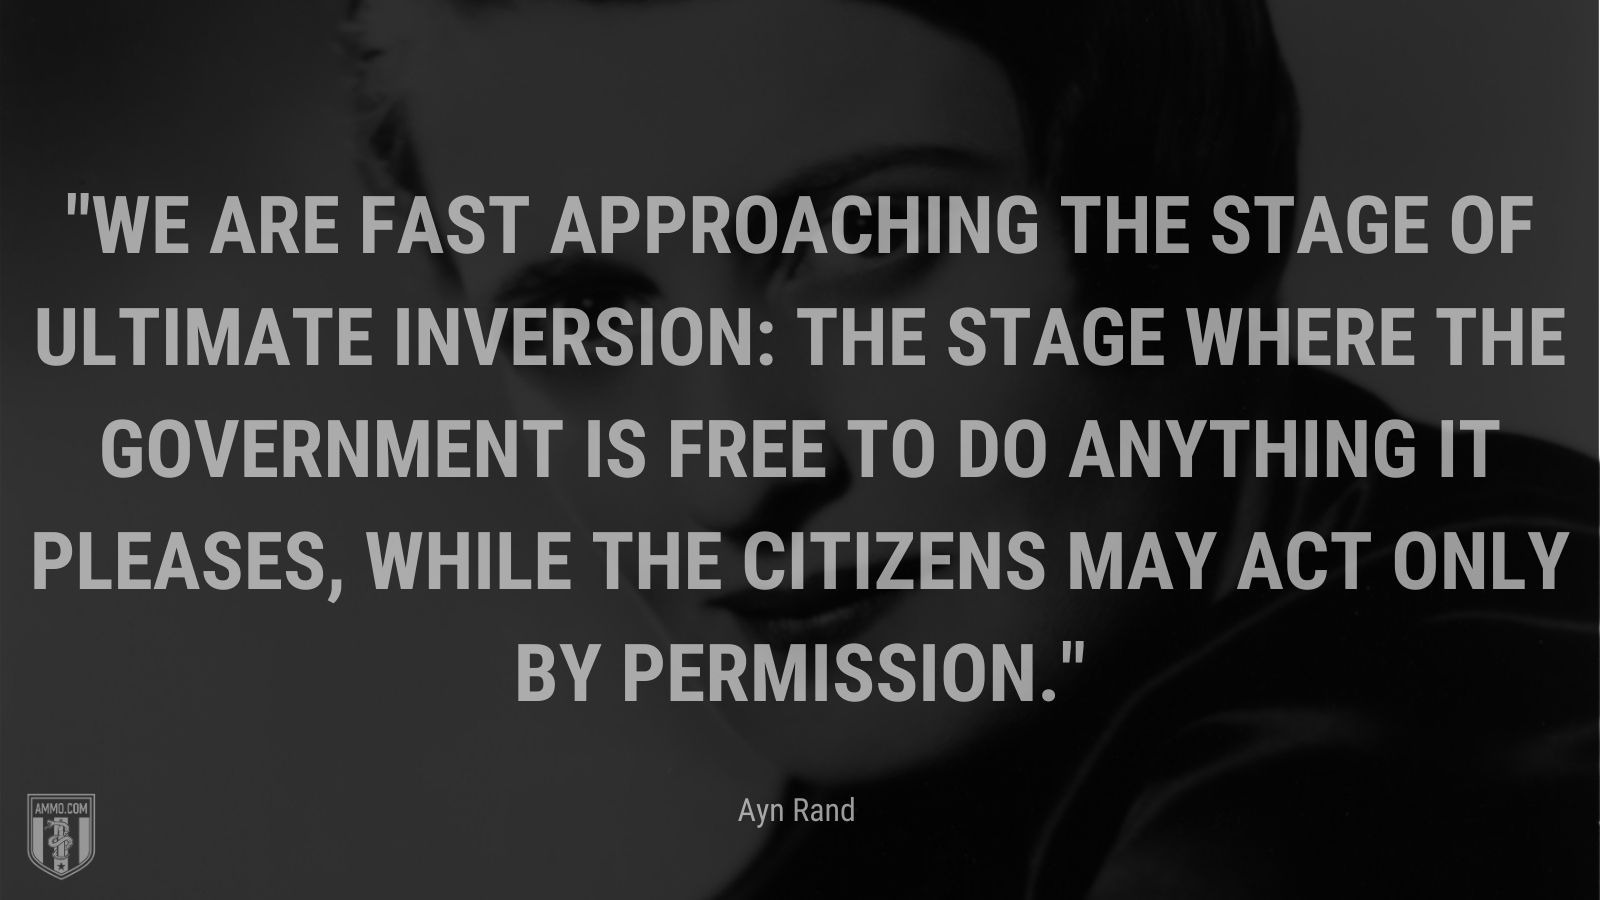 """""""We are fast approaching the stage of ultimate inversion: the stage where the government is free to do anything it pleases, while the citizens may act only by permission. - Ayn Rand"""